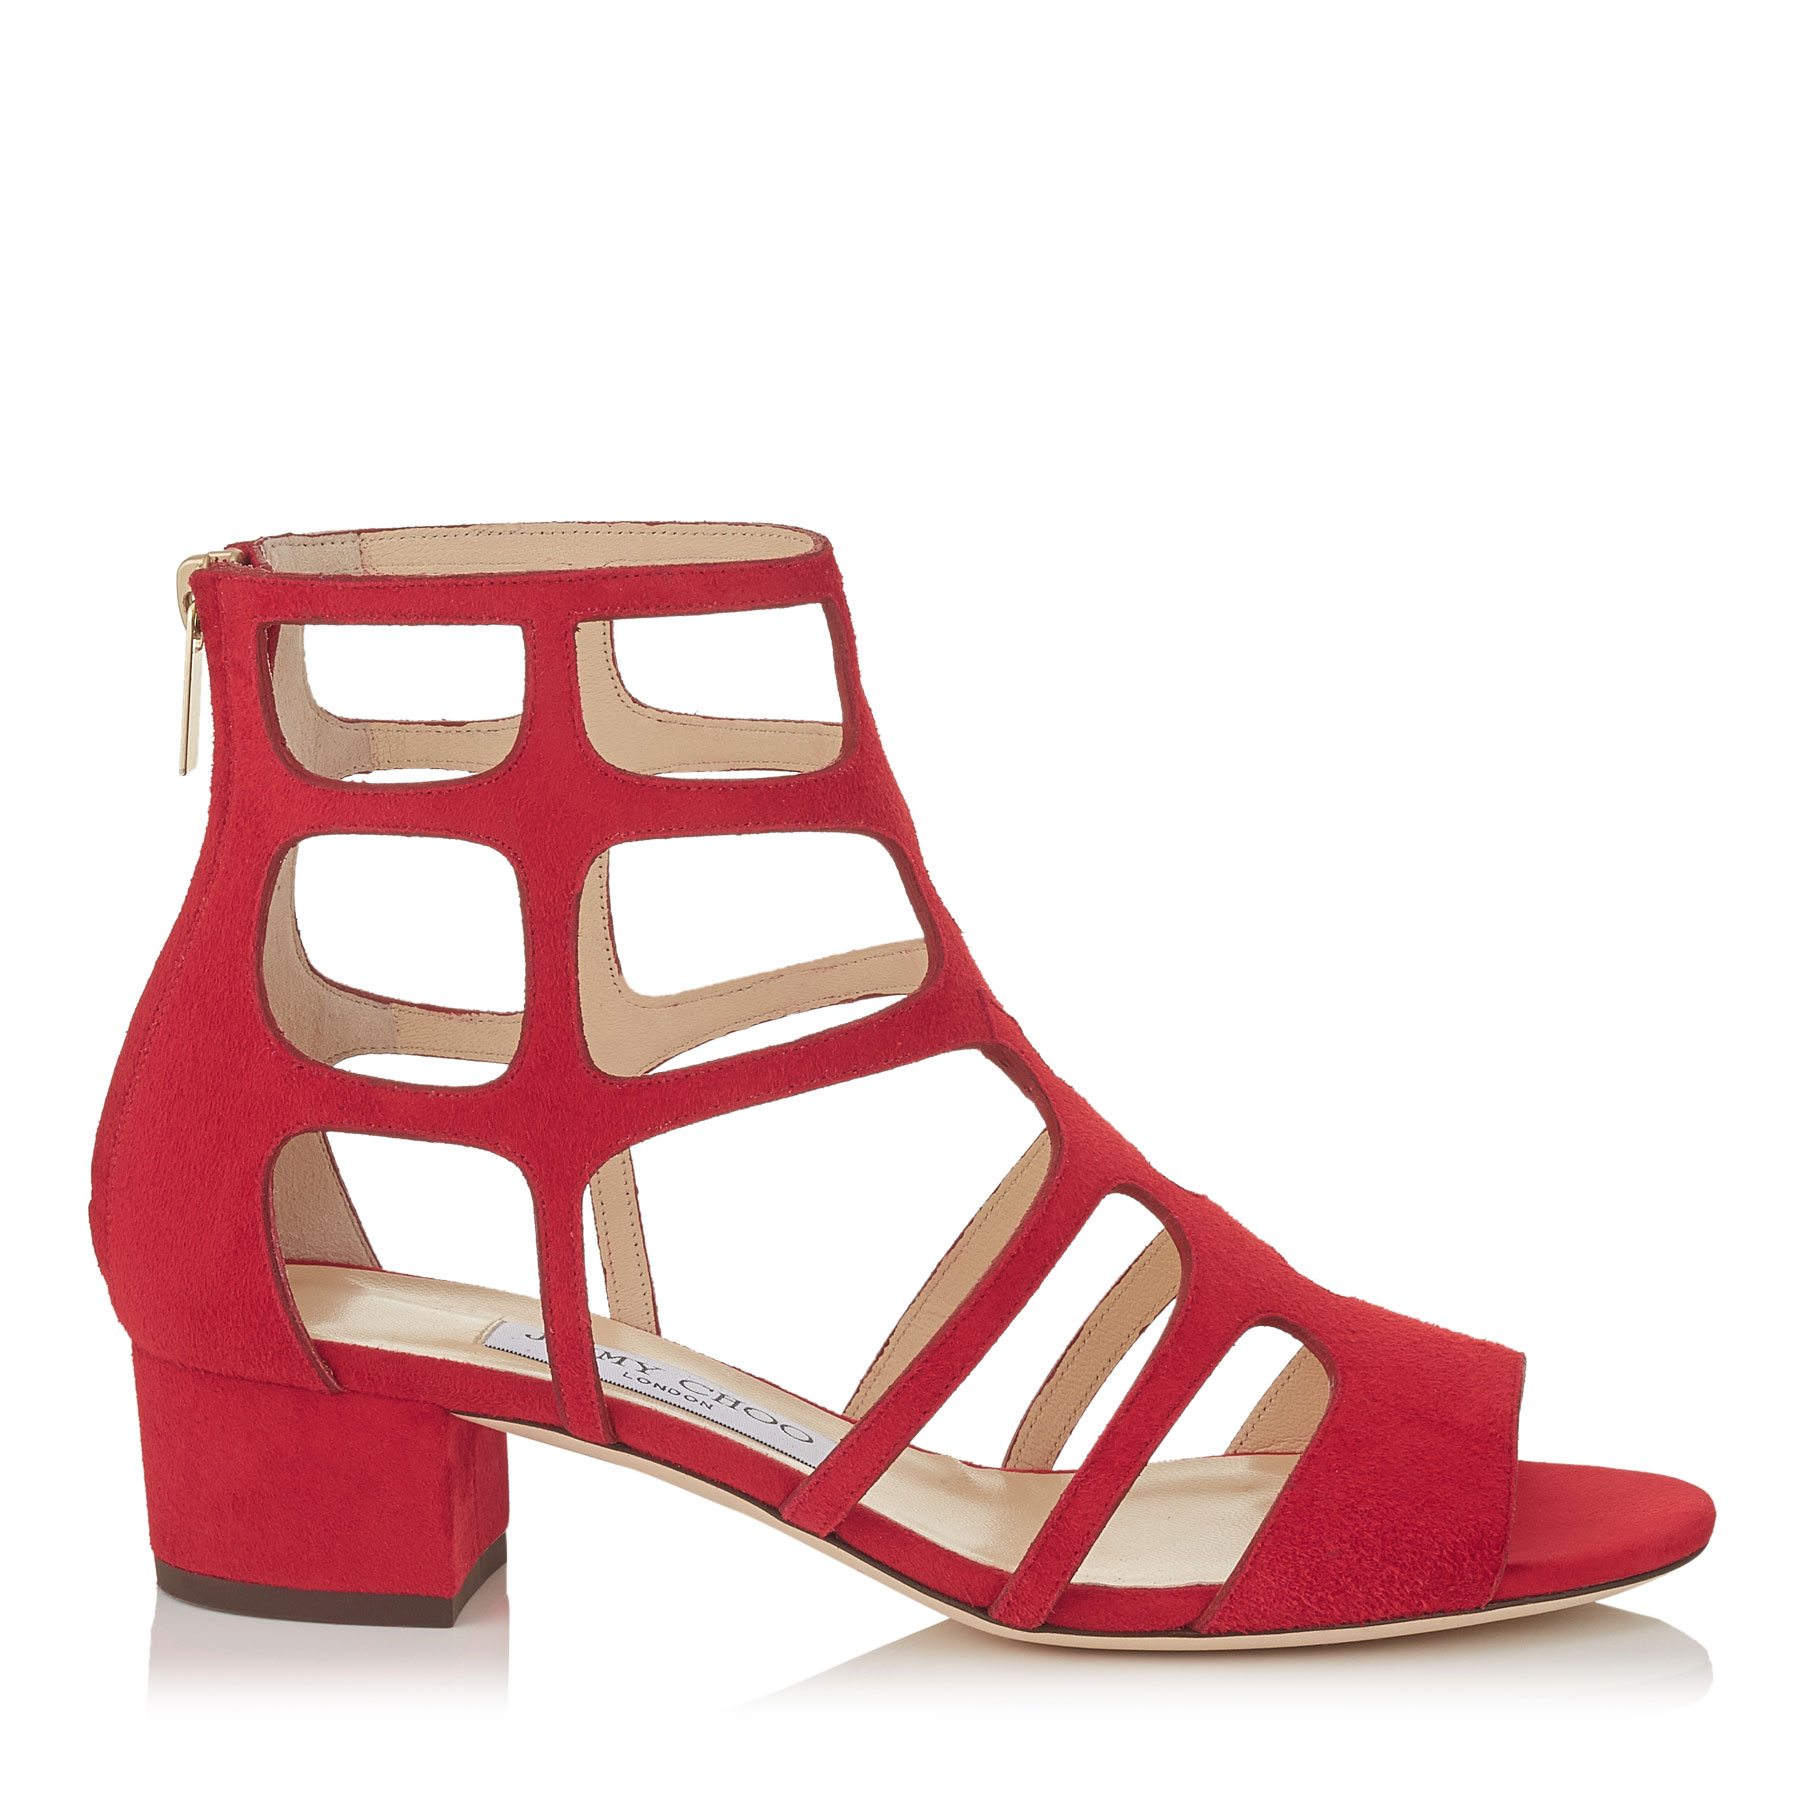 REN 35 Red Suede Sandals by Jimmy Choo